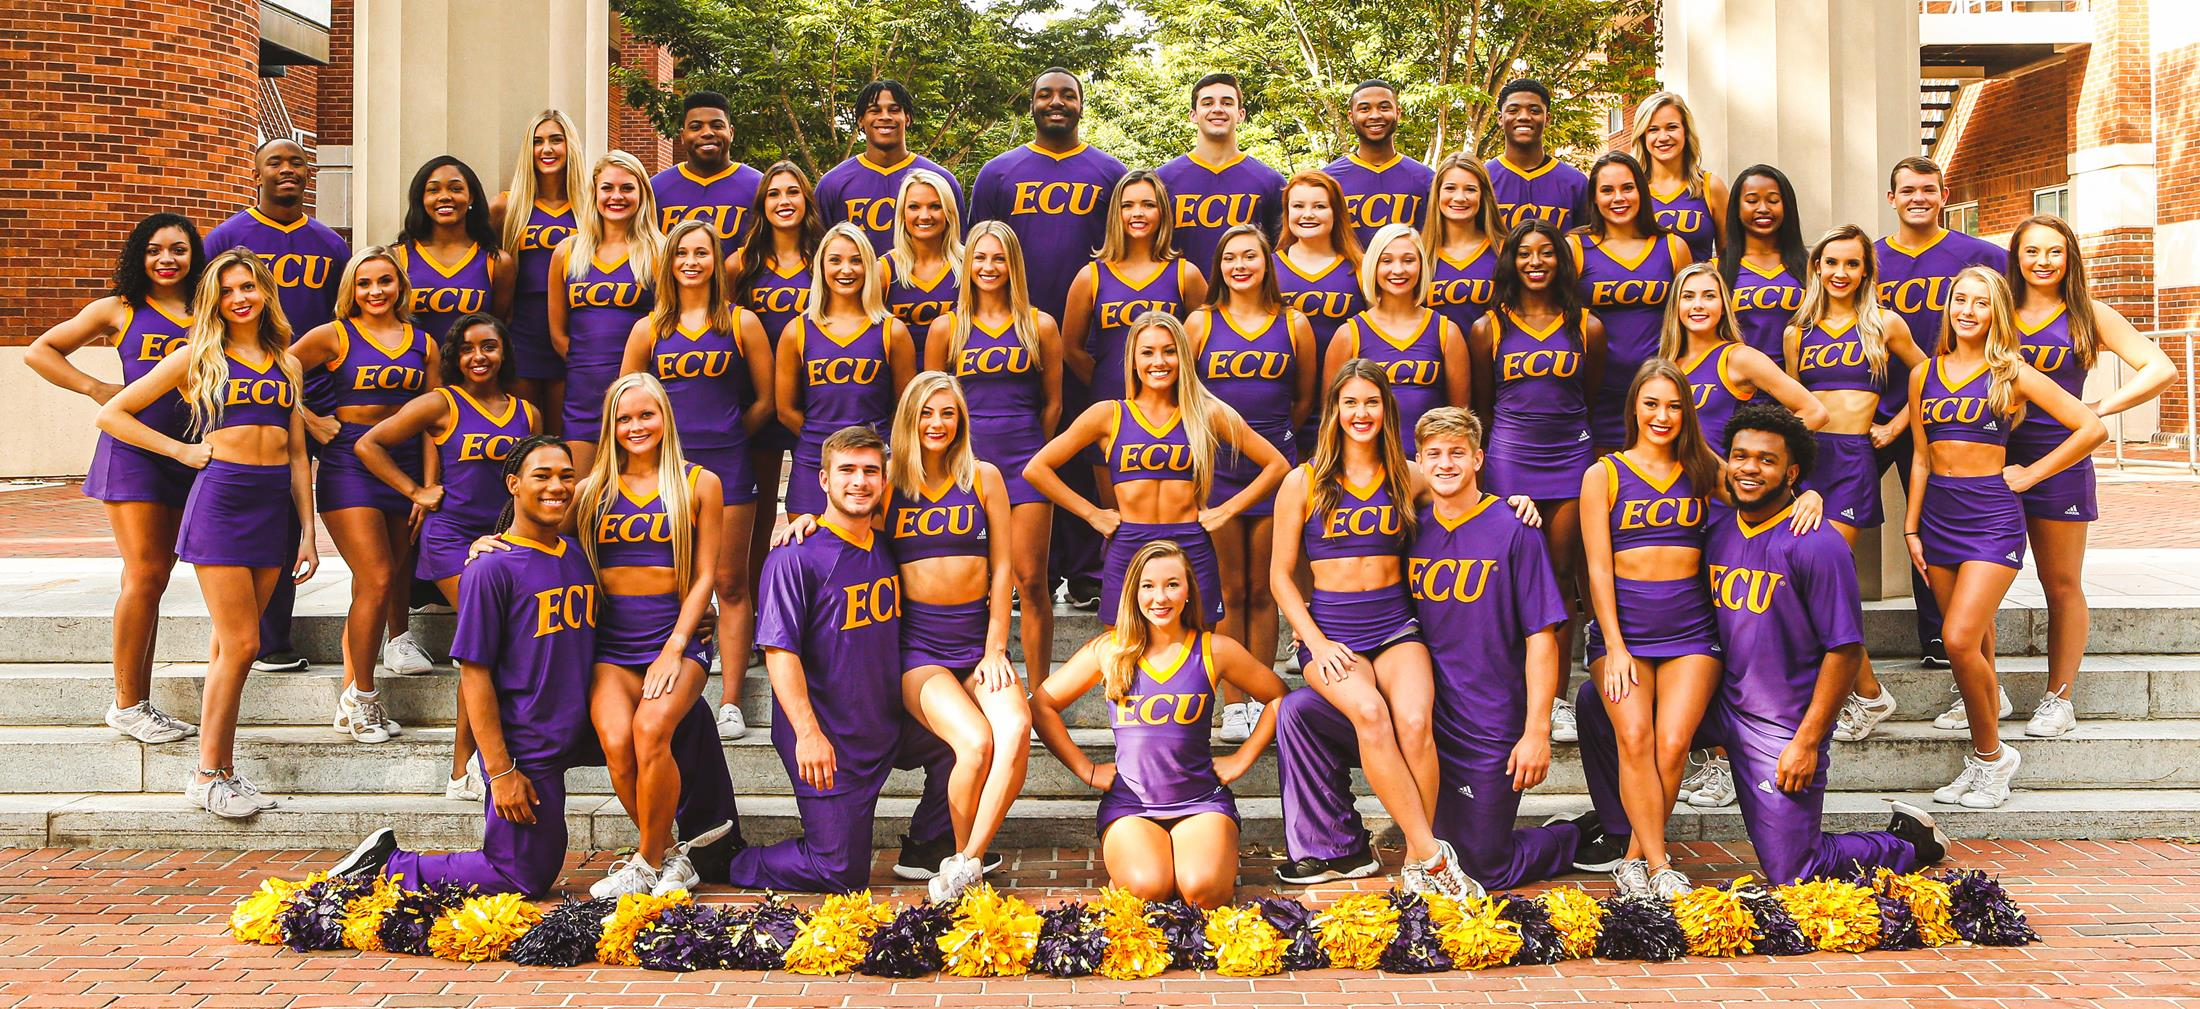 Cheerleading - East Carolina University Athletics throughout East Carolina University Academic Calendar